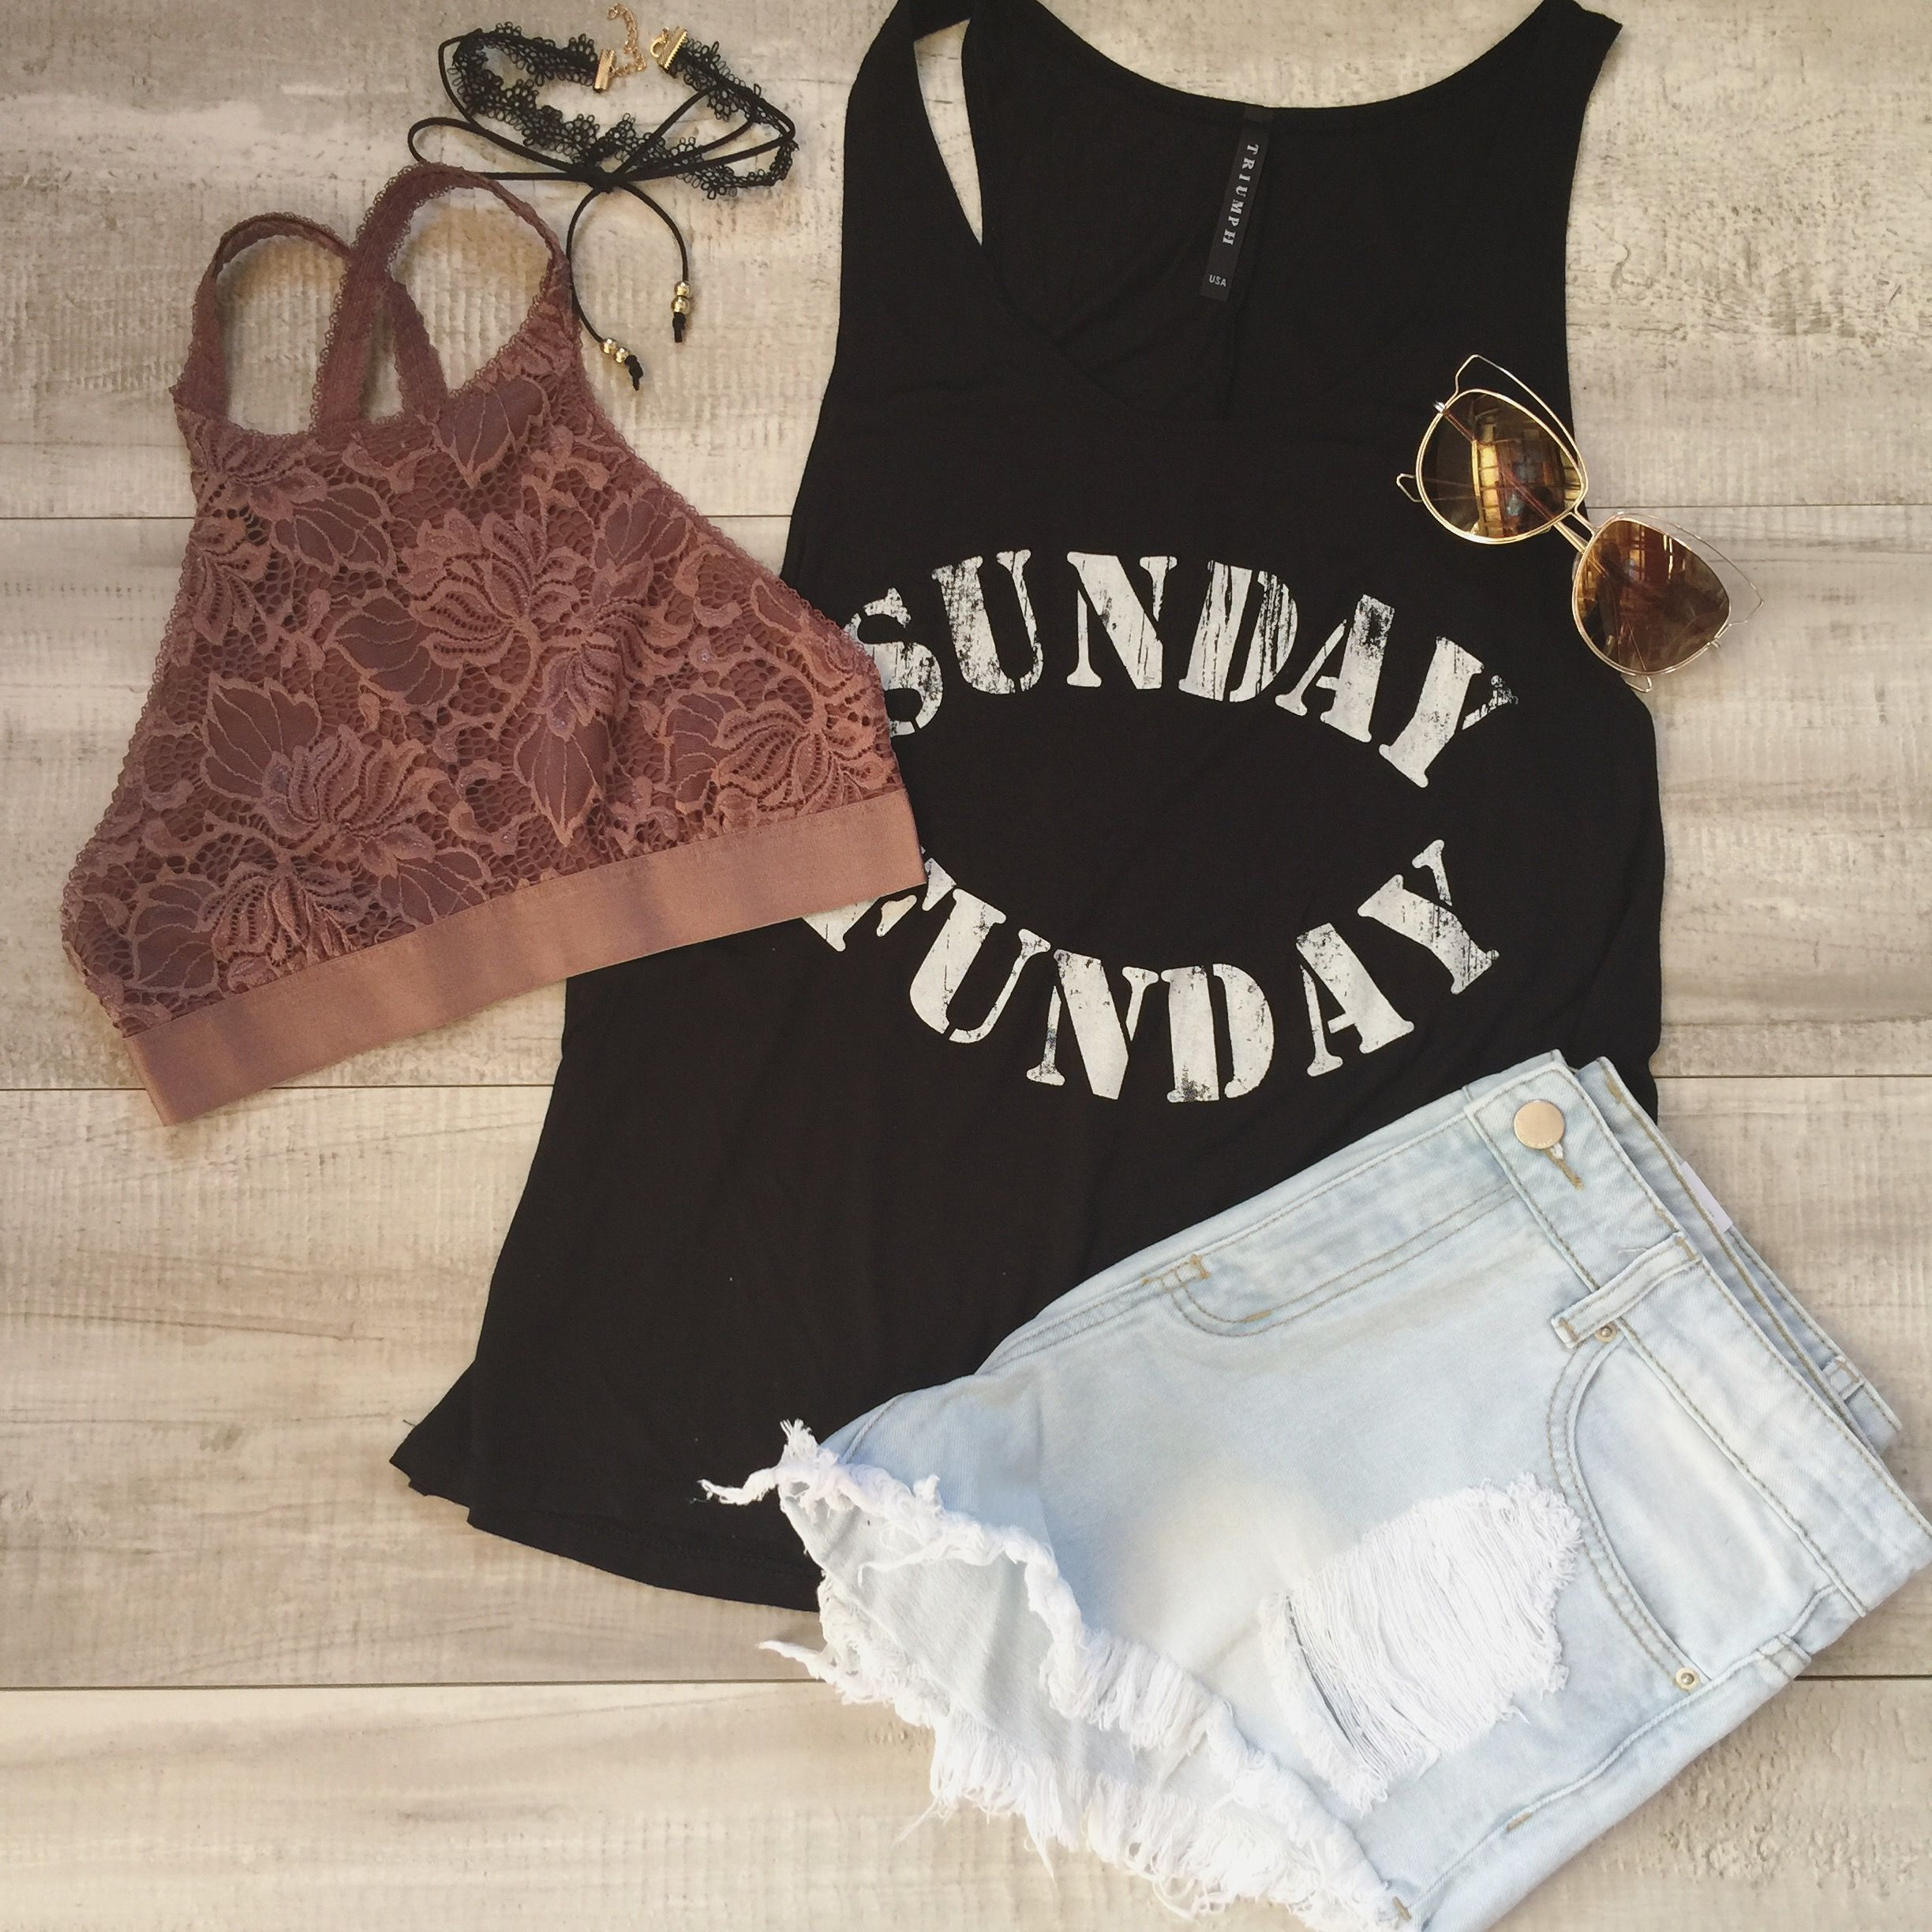 Cute #sundayfunday top with high neck Bralette